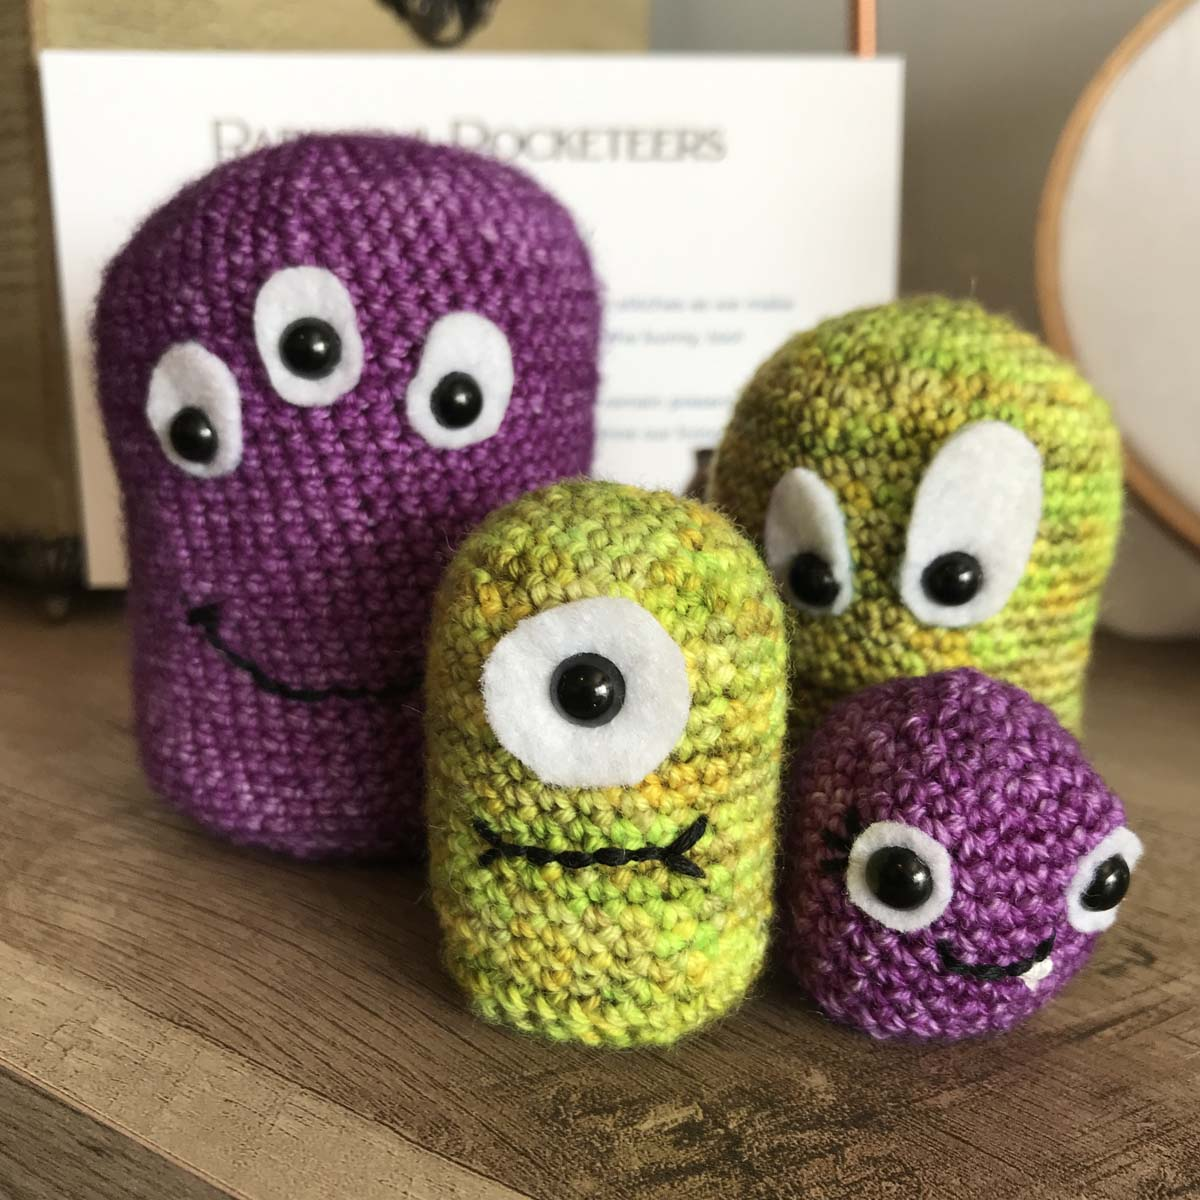 Selection of Amigurumi crocheted monsters in lime green and purple.